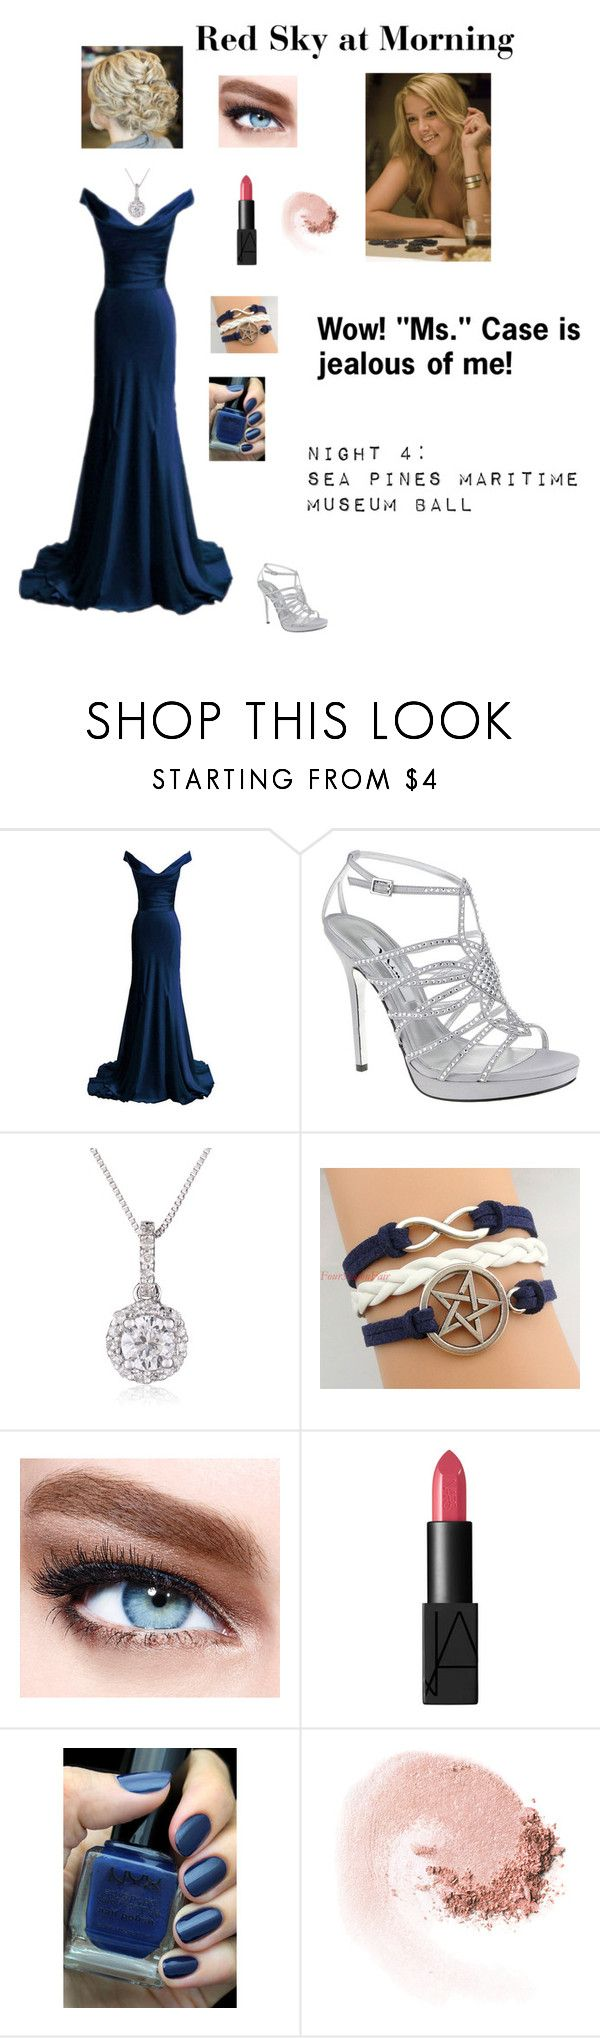 """""""SPN - S3E6 """"Red Sky at Morning"""" -  Kelsey Sanders"""" by nerdbucket ❤ liked on Polyvore featuring Dina bar-el, Nina, Maybelline, NARS Cosmetics and NYX"""